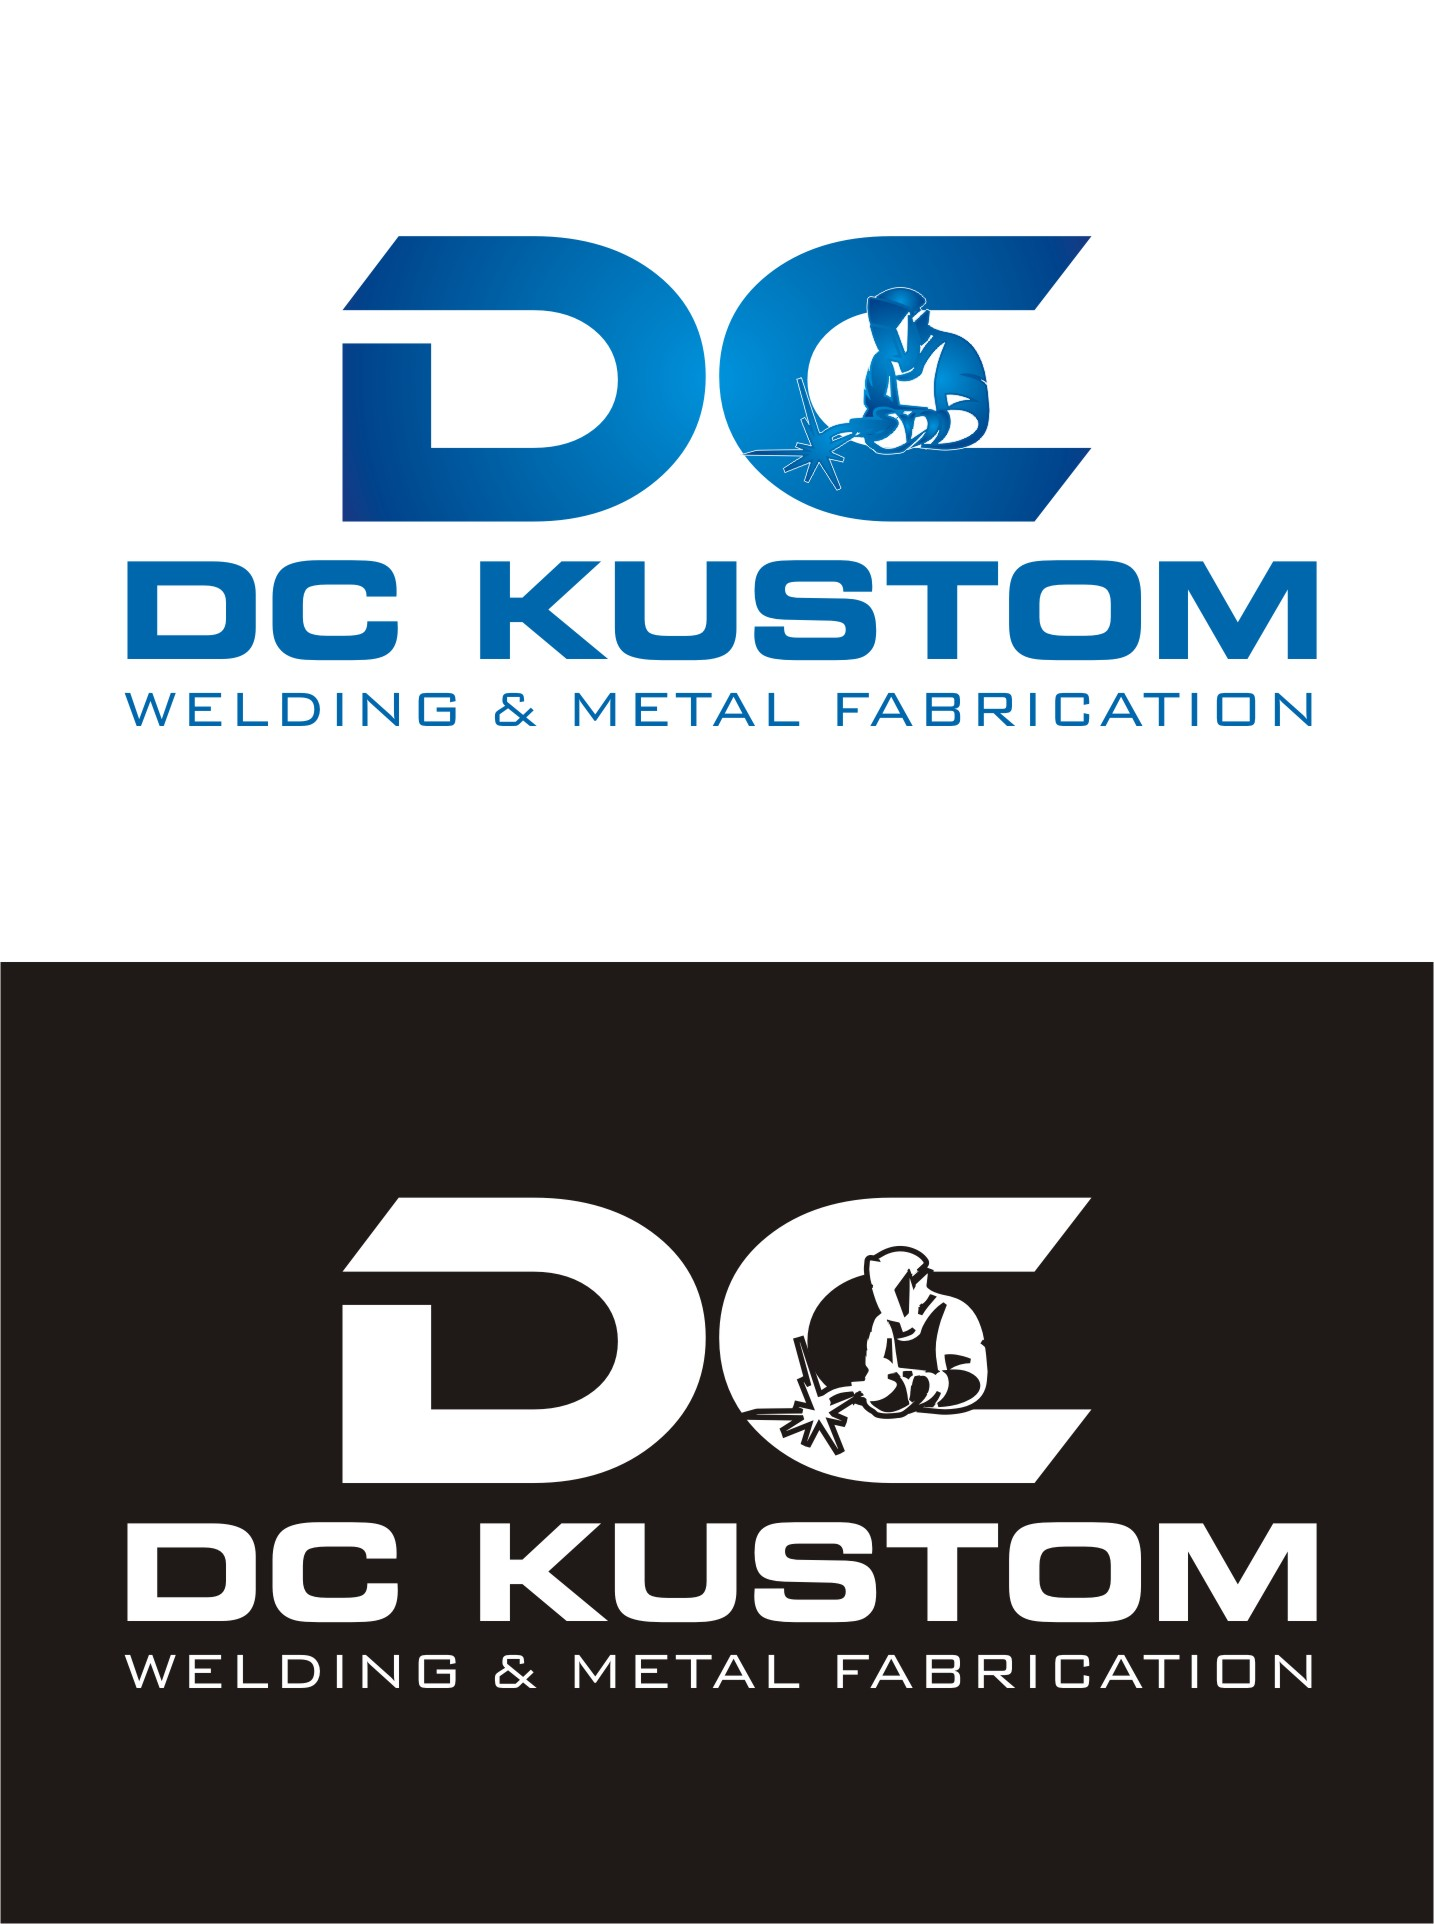 Logo Design by Spider Graphics - Entry No. 198 in the Logo Design Contest Imaginative Logo Design for DC KUSTOM WELDING & METAL FABRICATION.